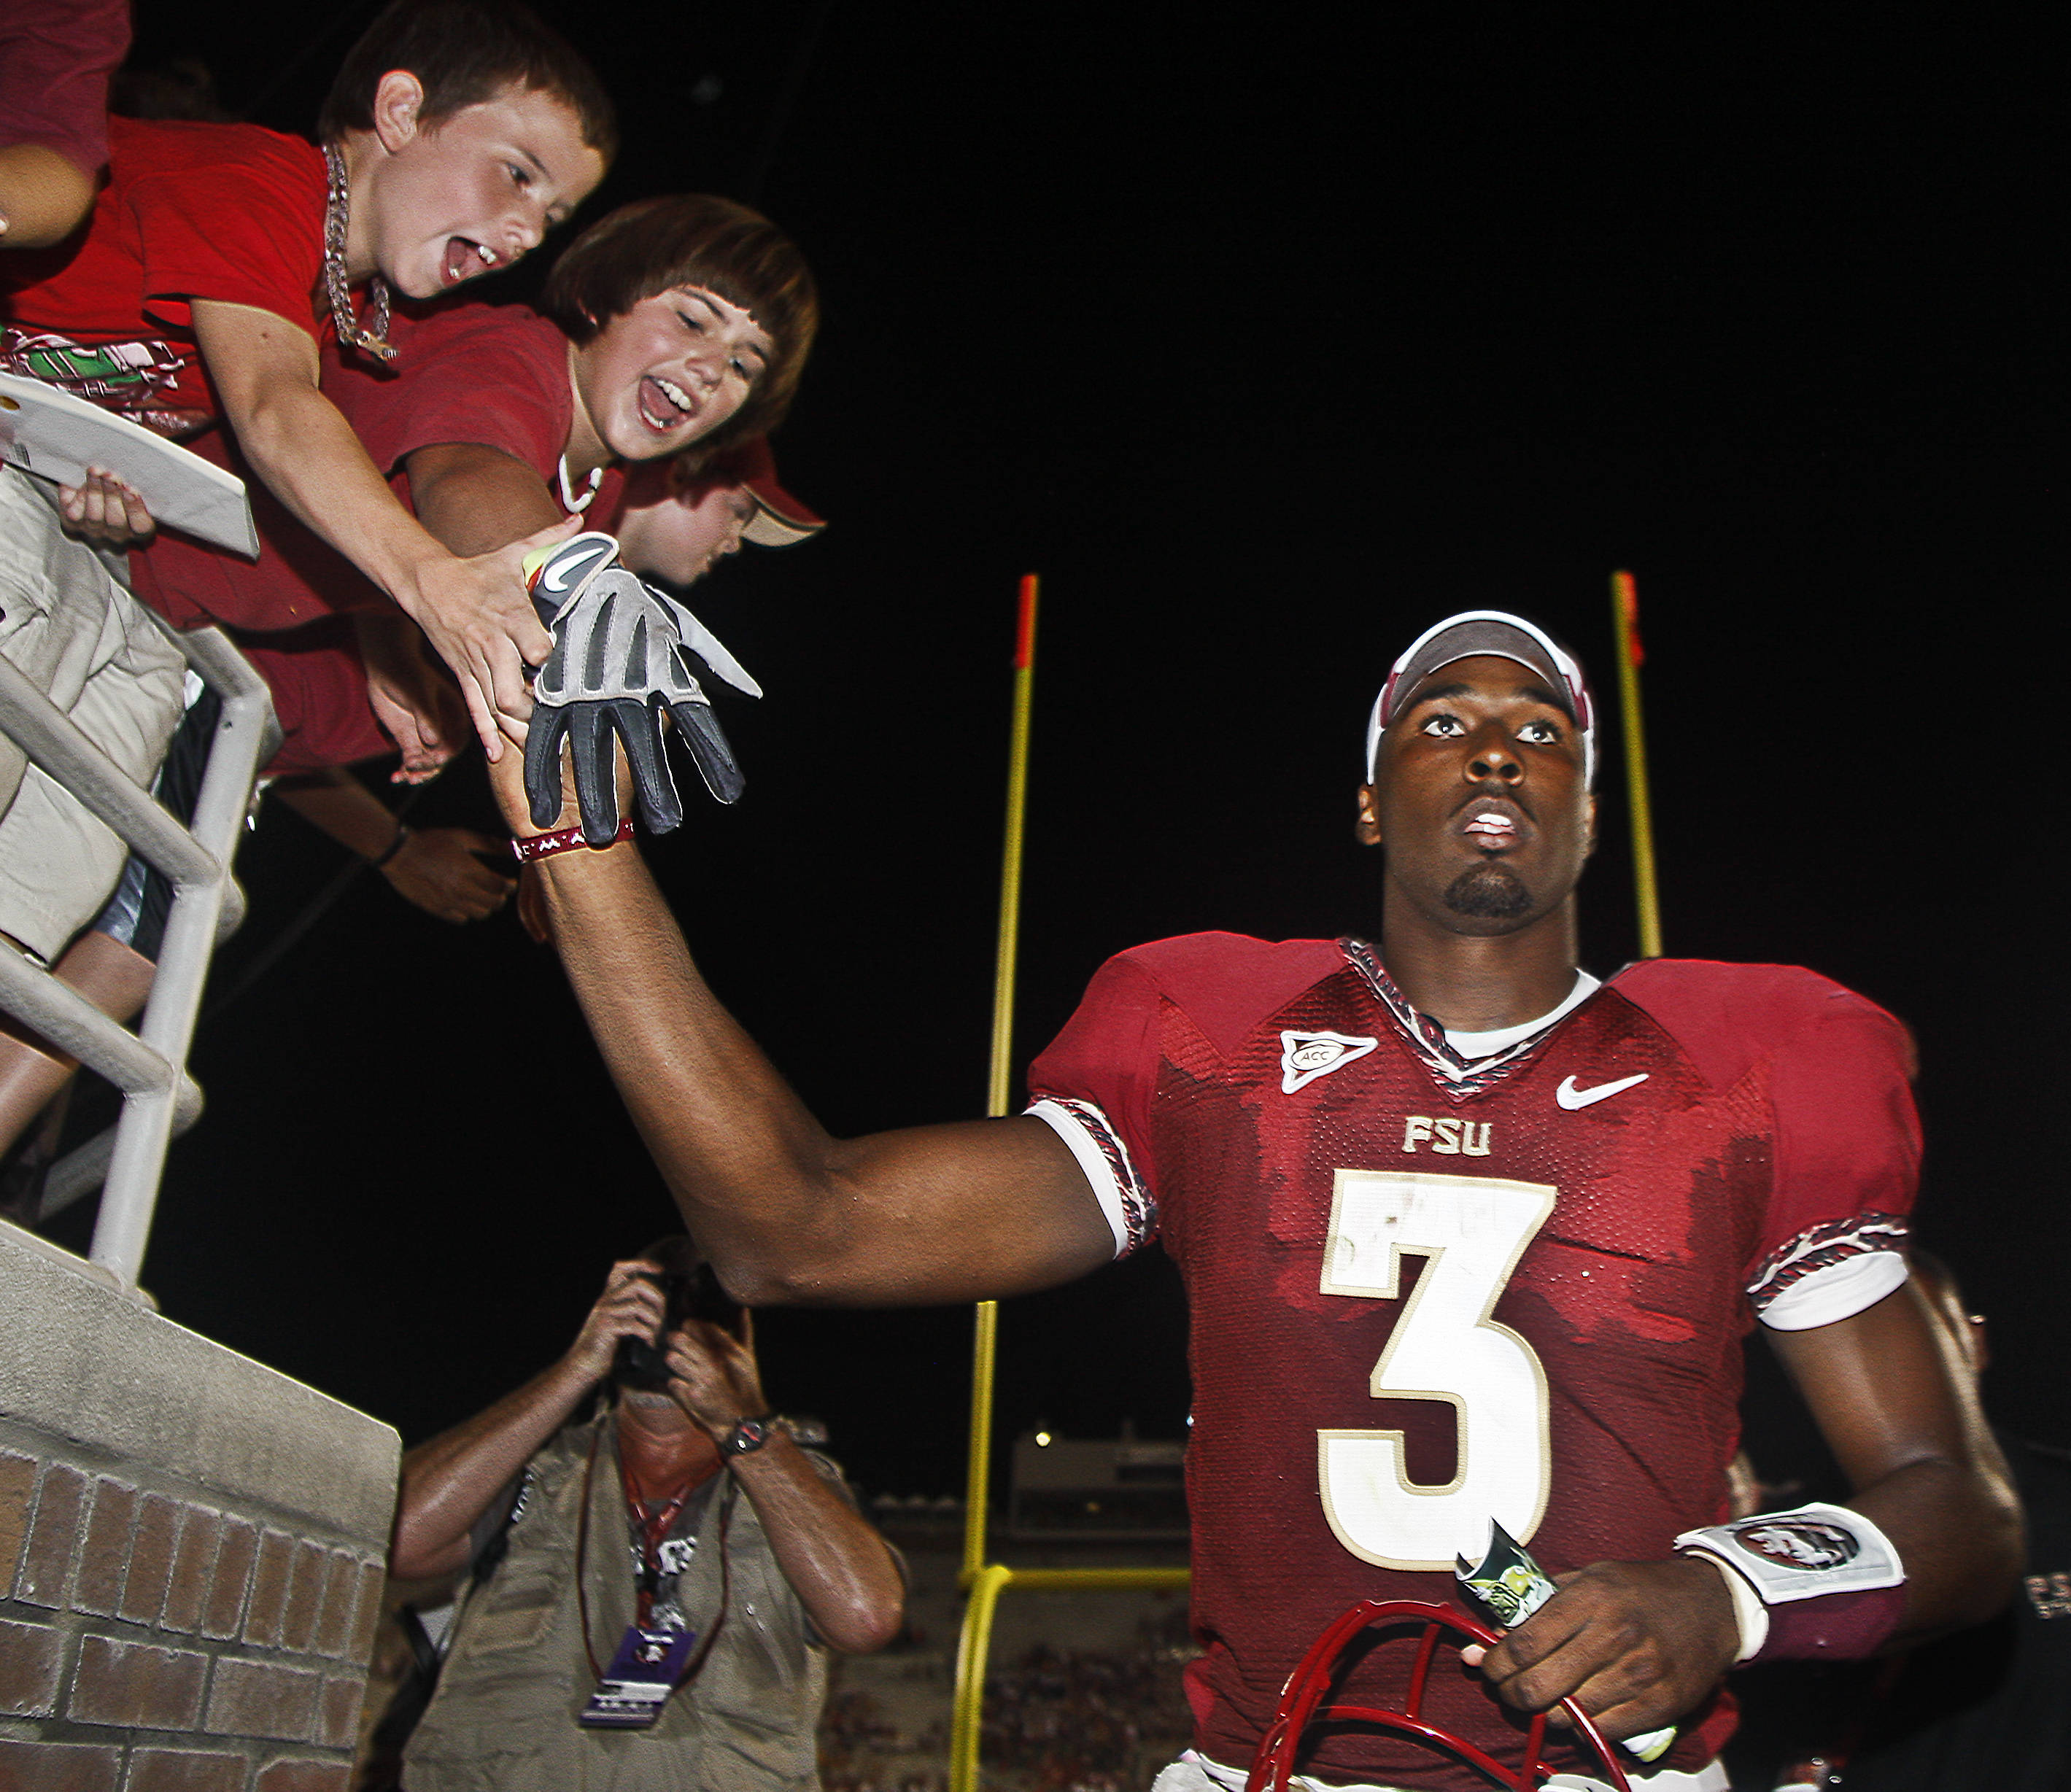 Florida State quarterback E.J. Manuel (3) gives away his glove to a fan as he leaves after an NCAA college football game against Charleston Southern on Saturday, Sept. 10, 2011, in Tallahassee, Fla. FSU won 62-10. (AP Photo/Phil Sears)